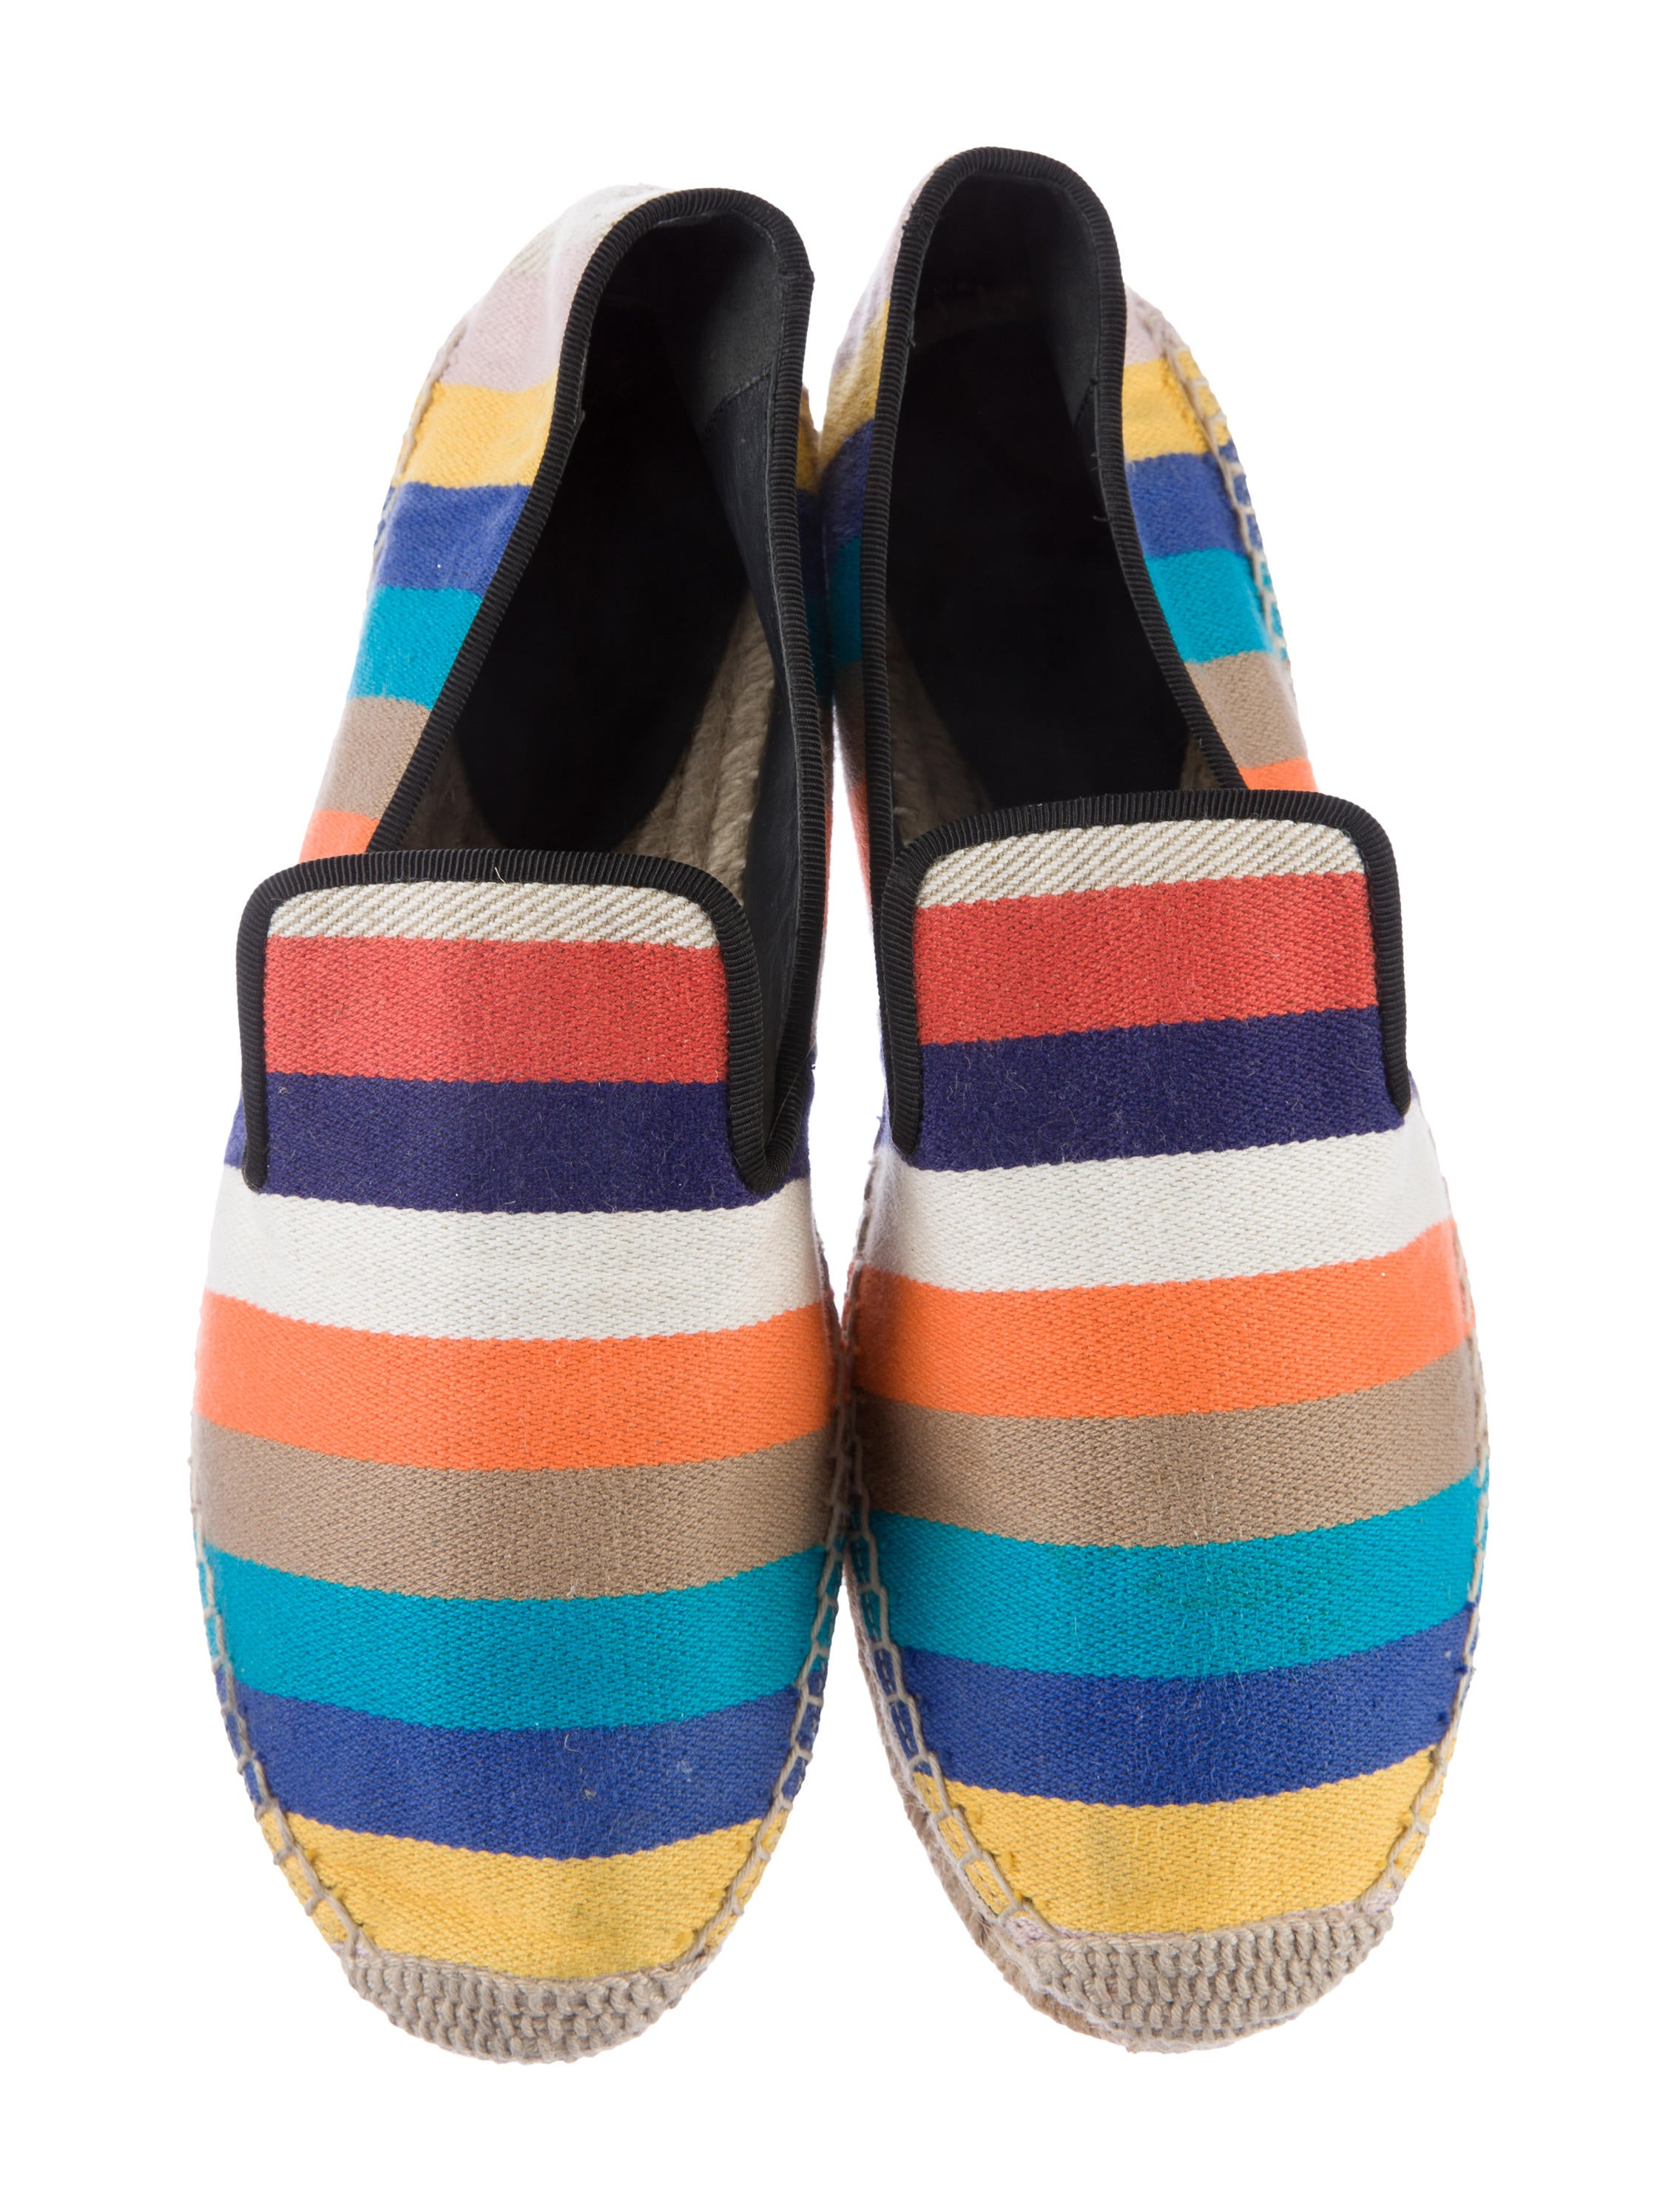 Find and save ideas about Striped shoes on Pinterest. | See more ideas about Kate spade sandals, Summer flats and Vans footwear.